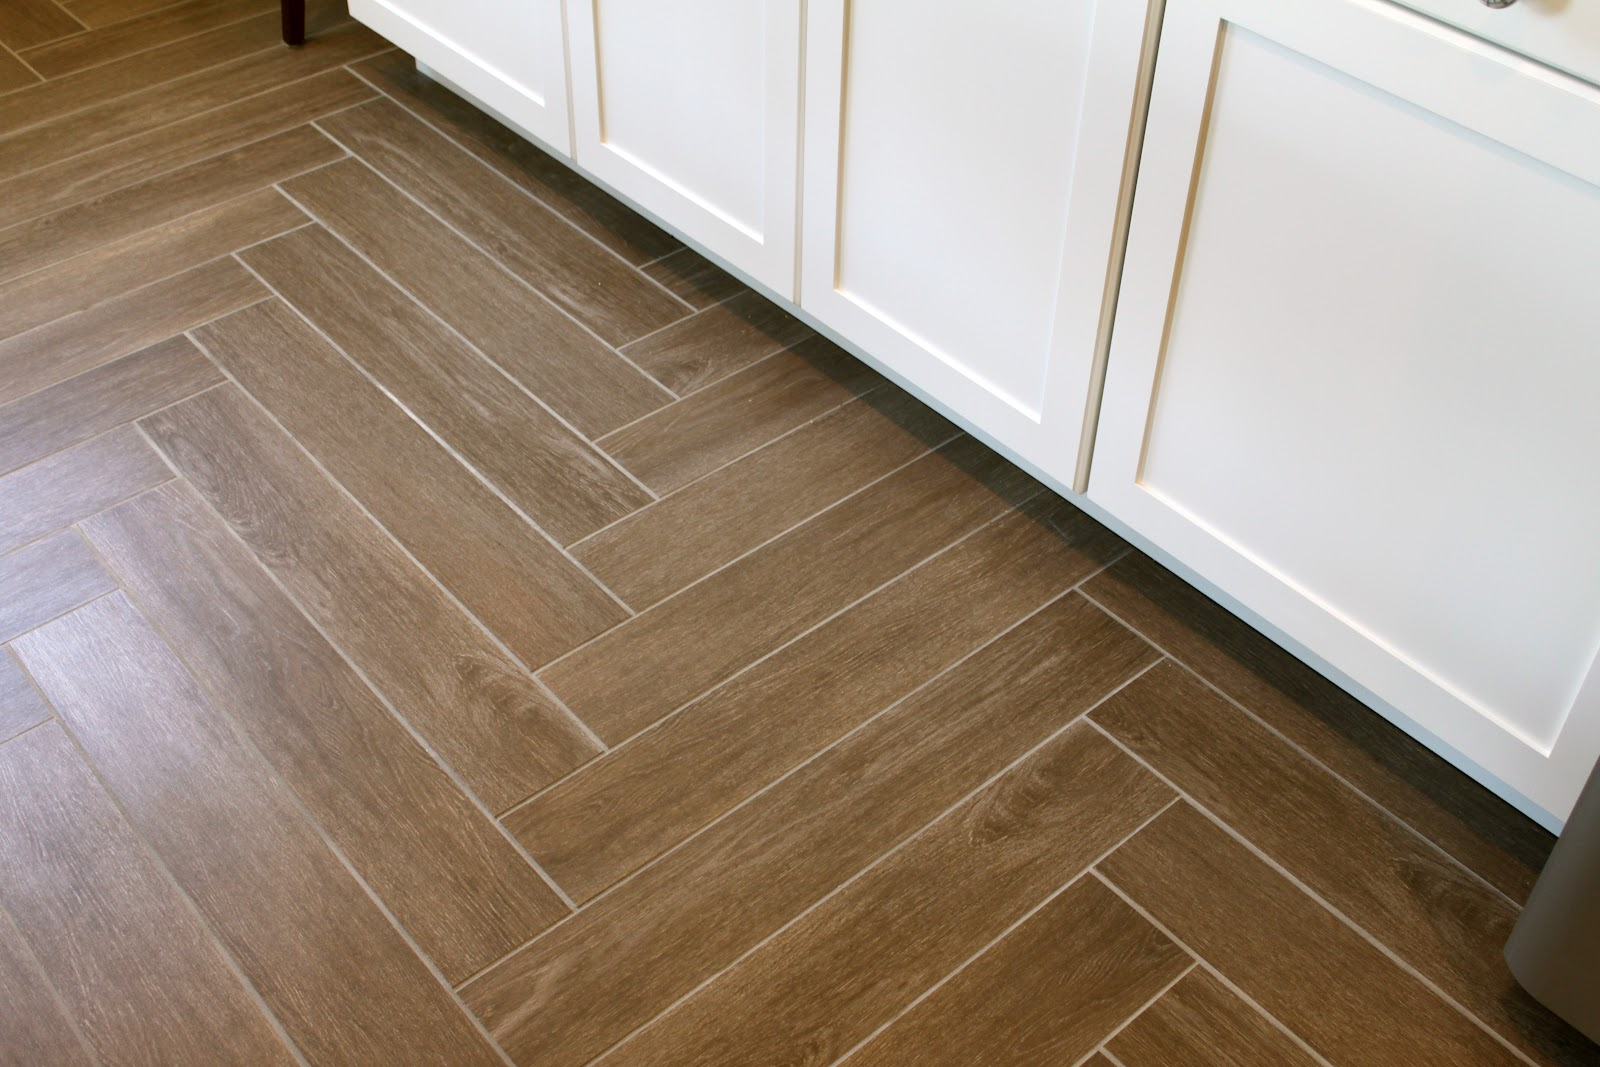 Simple laminate flooring natural simple design of the laminate flooring herringbone design that has  wooden XYHFPNE